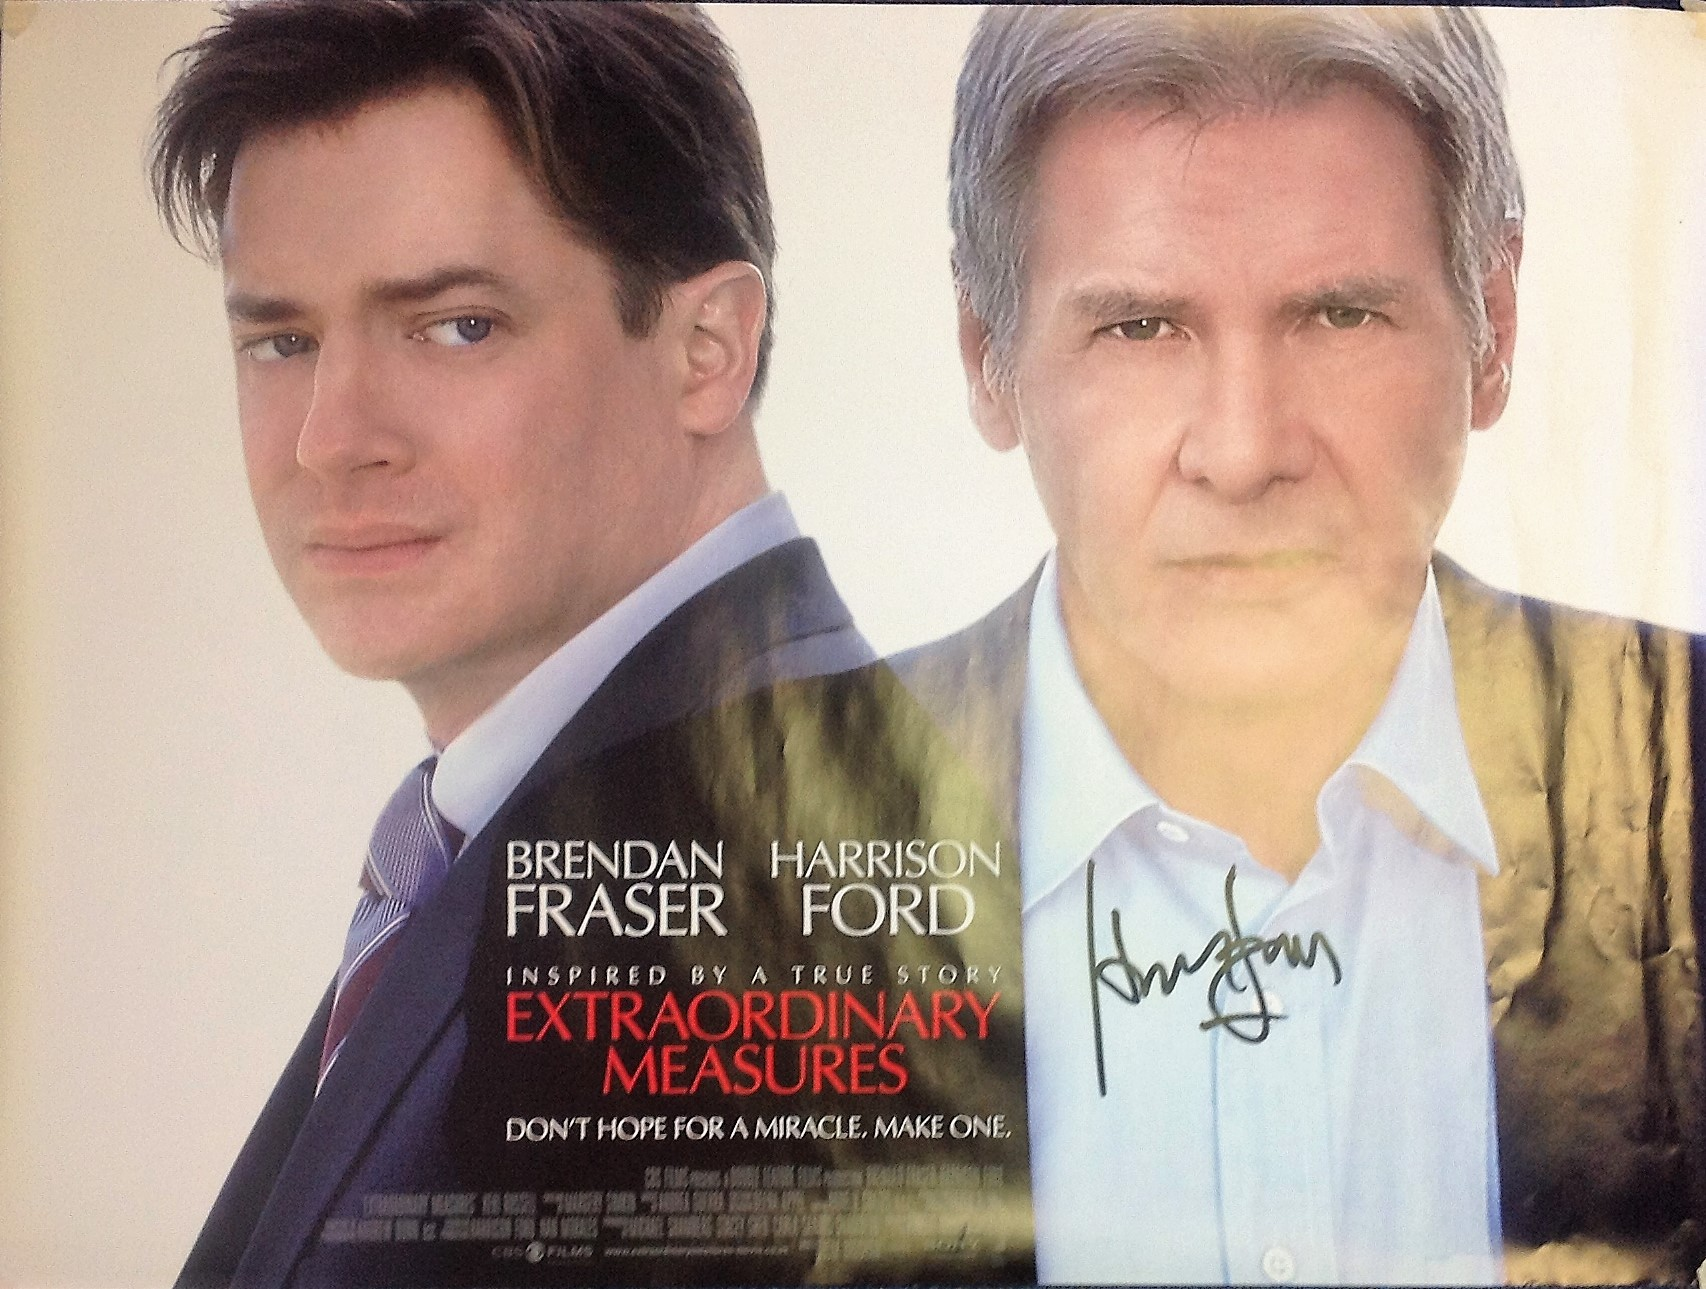 Lot 35 - Harrison Ford signed large A0 Extraordinary Measures promotional poster, signed in black marker.